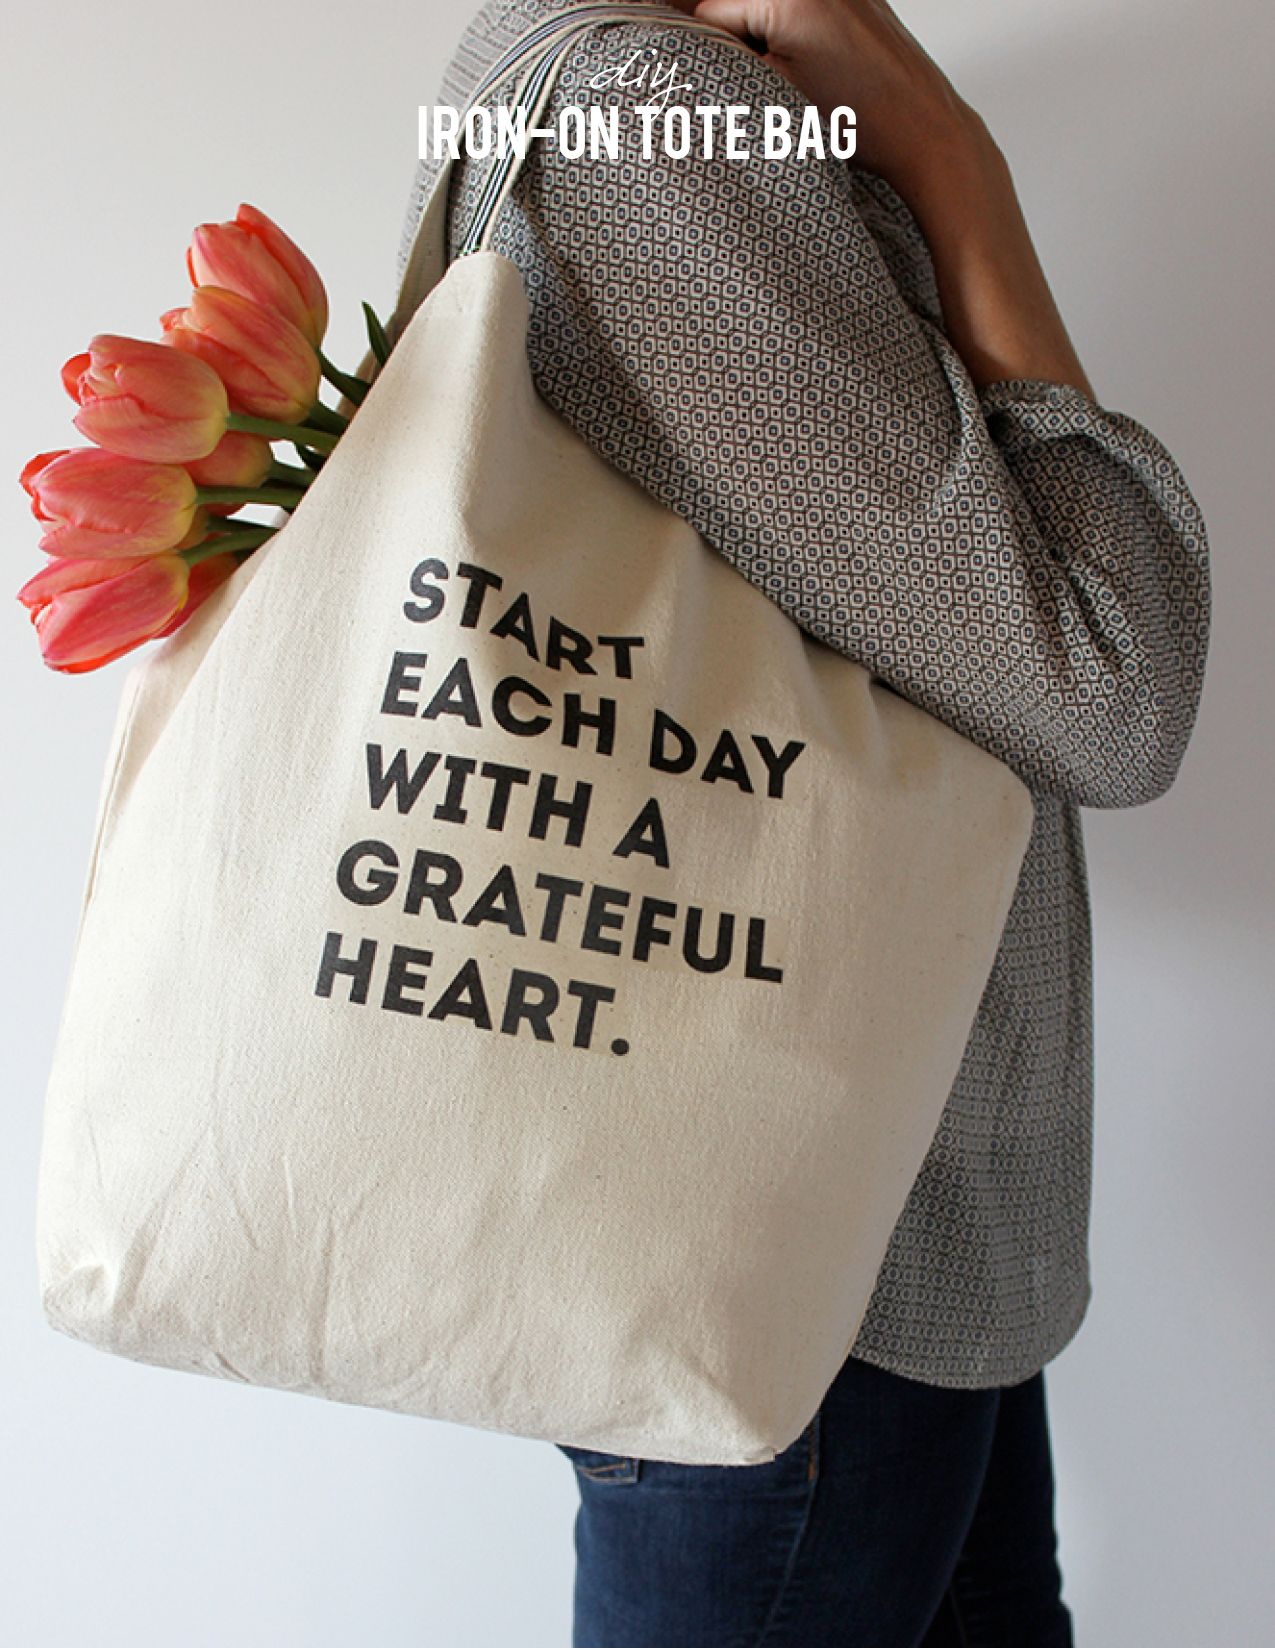 DIY Iron on Tote Bag DIY to do Pinterest